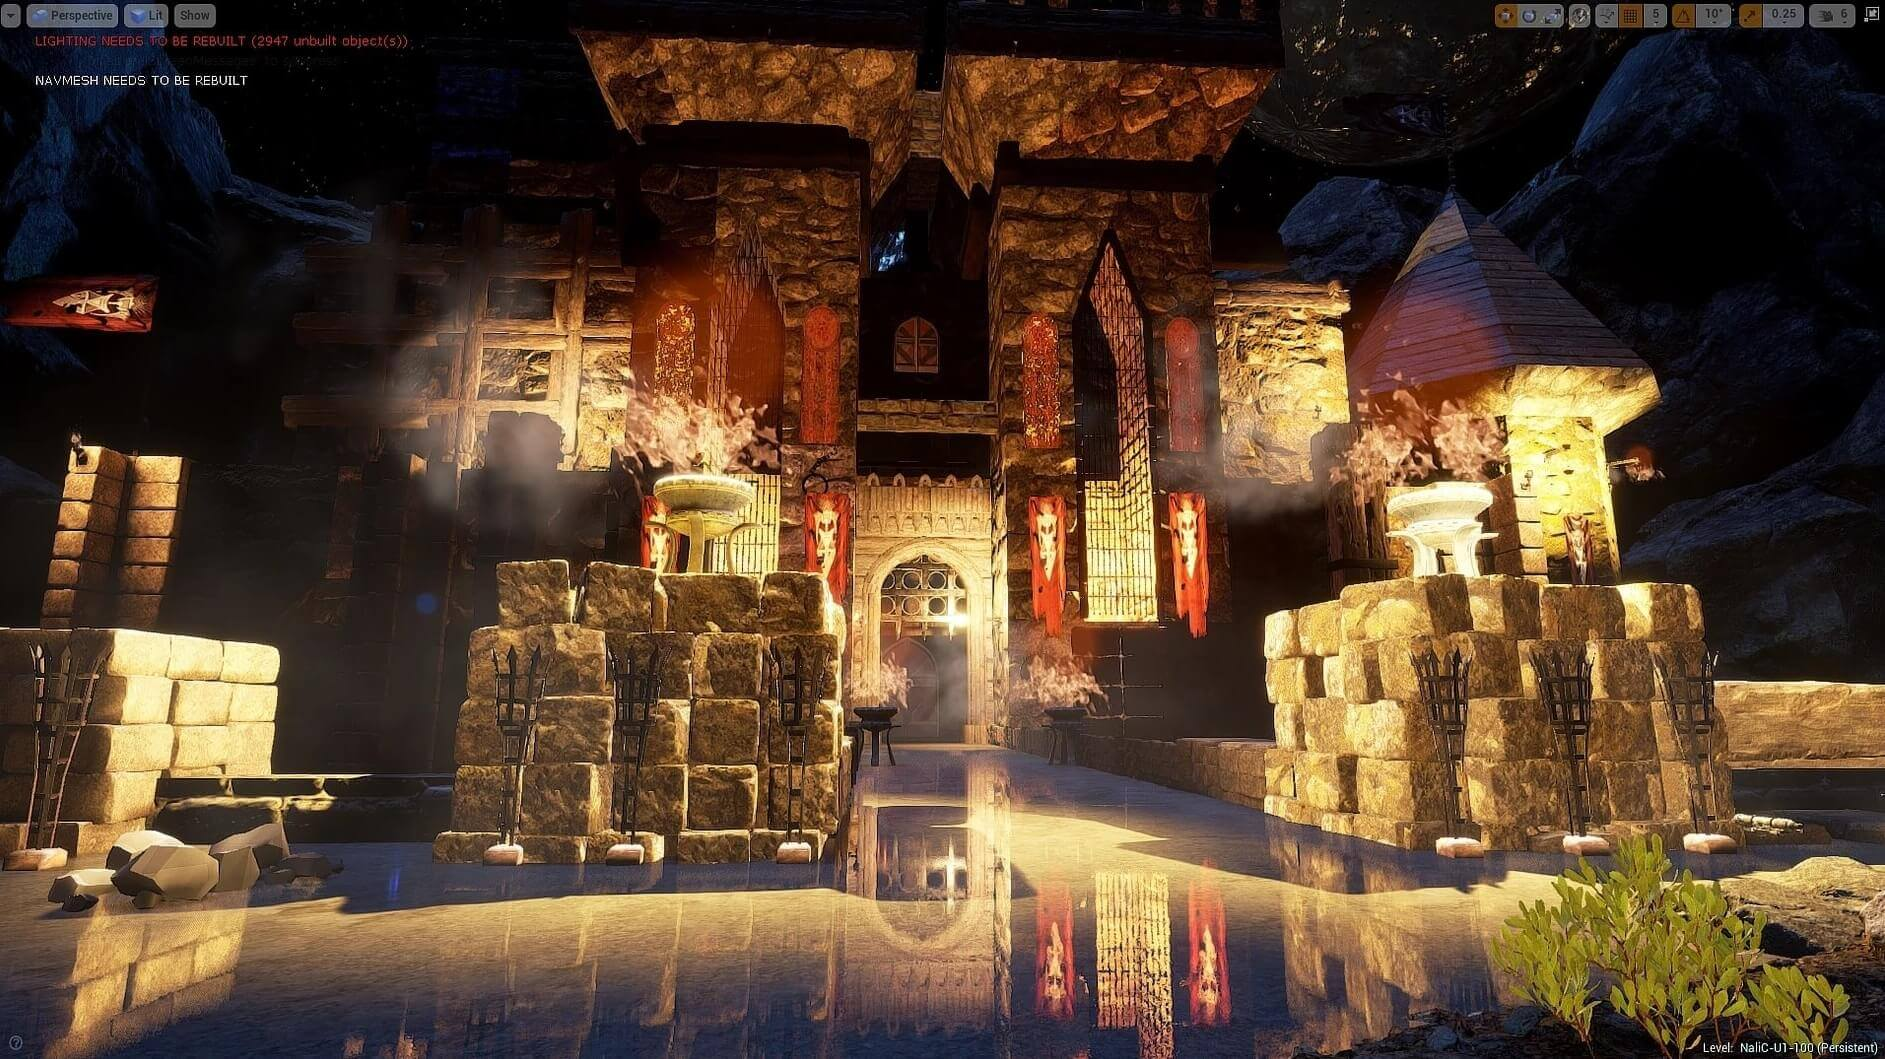 Someone is remaking the original Unreal with Unreal Engine 4